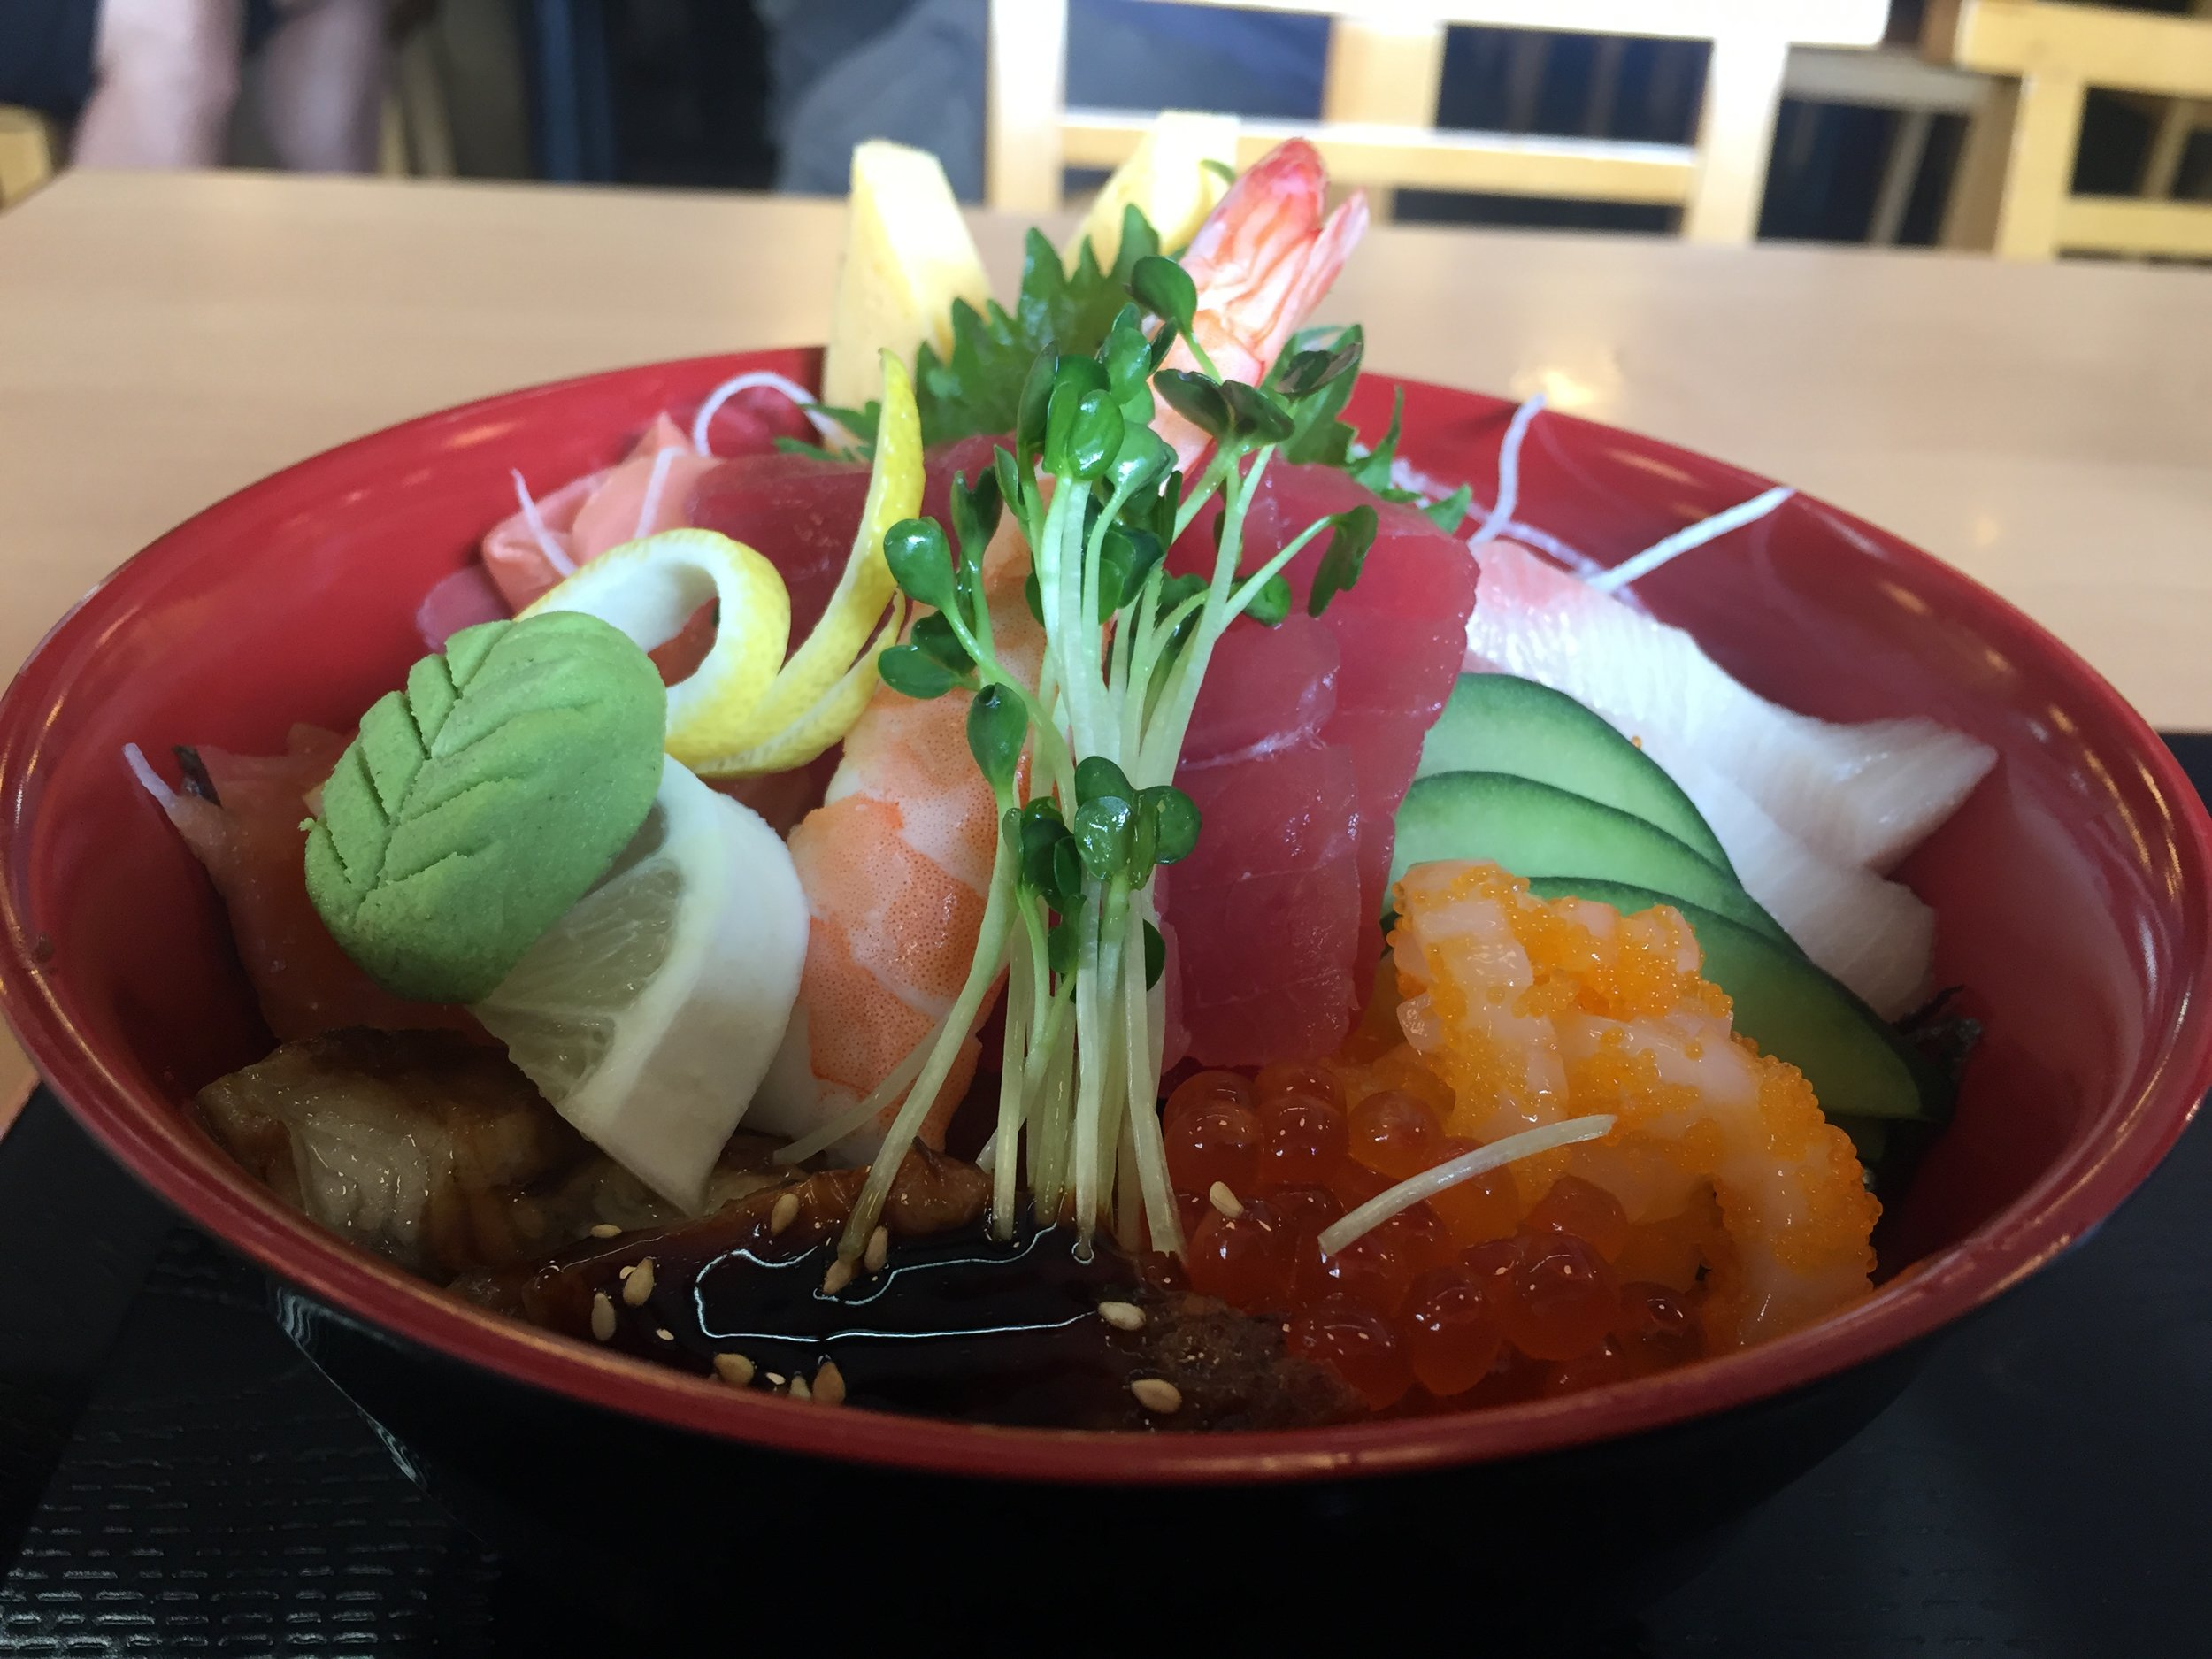 Today I ordered the Chirashi!